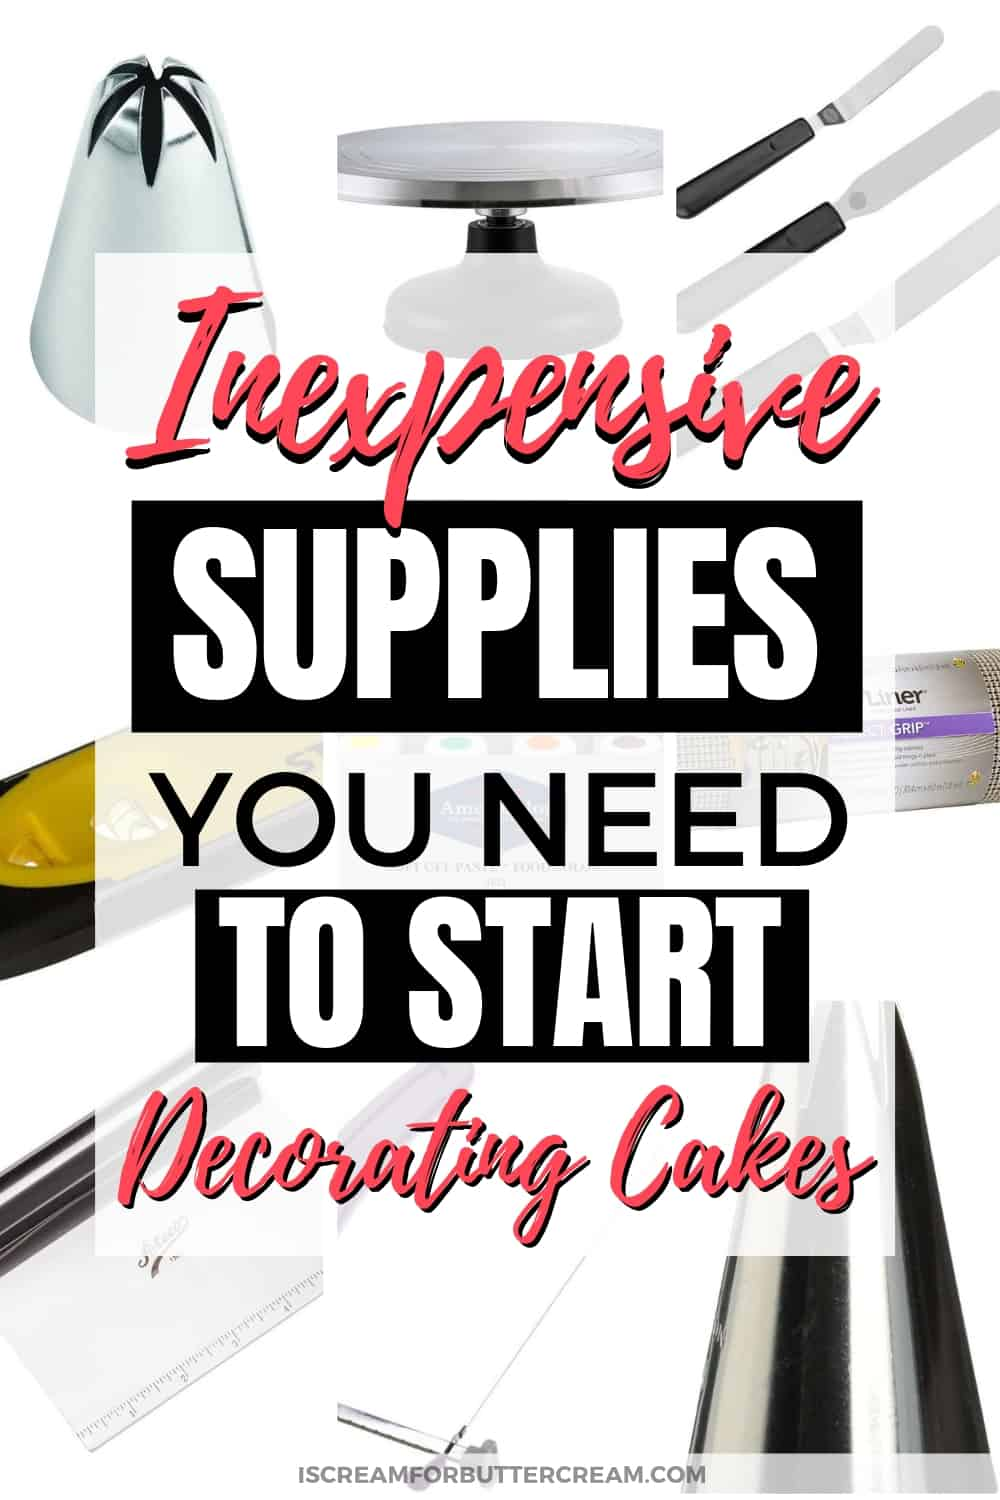 Inexpensive Supplies you need to start Decorating Cakes Pinterest Graphic 2